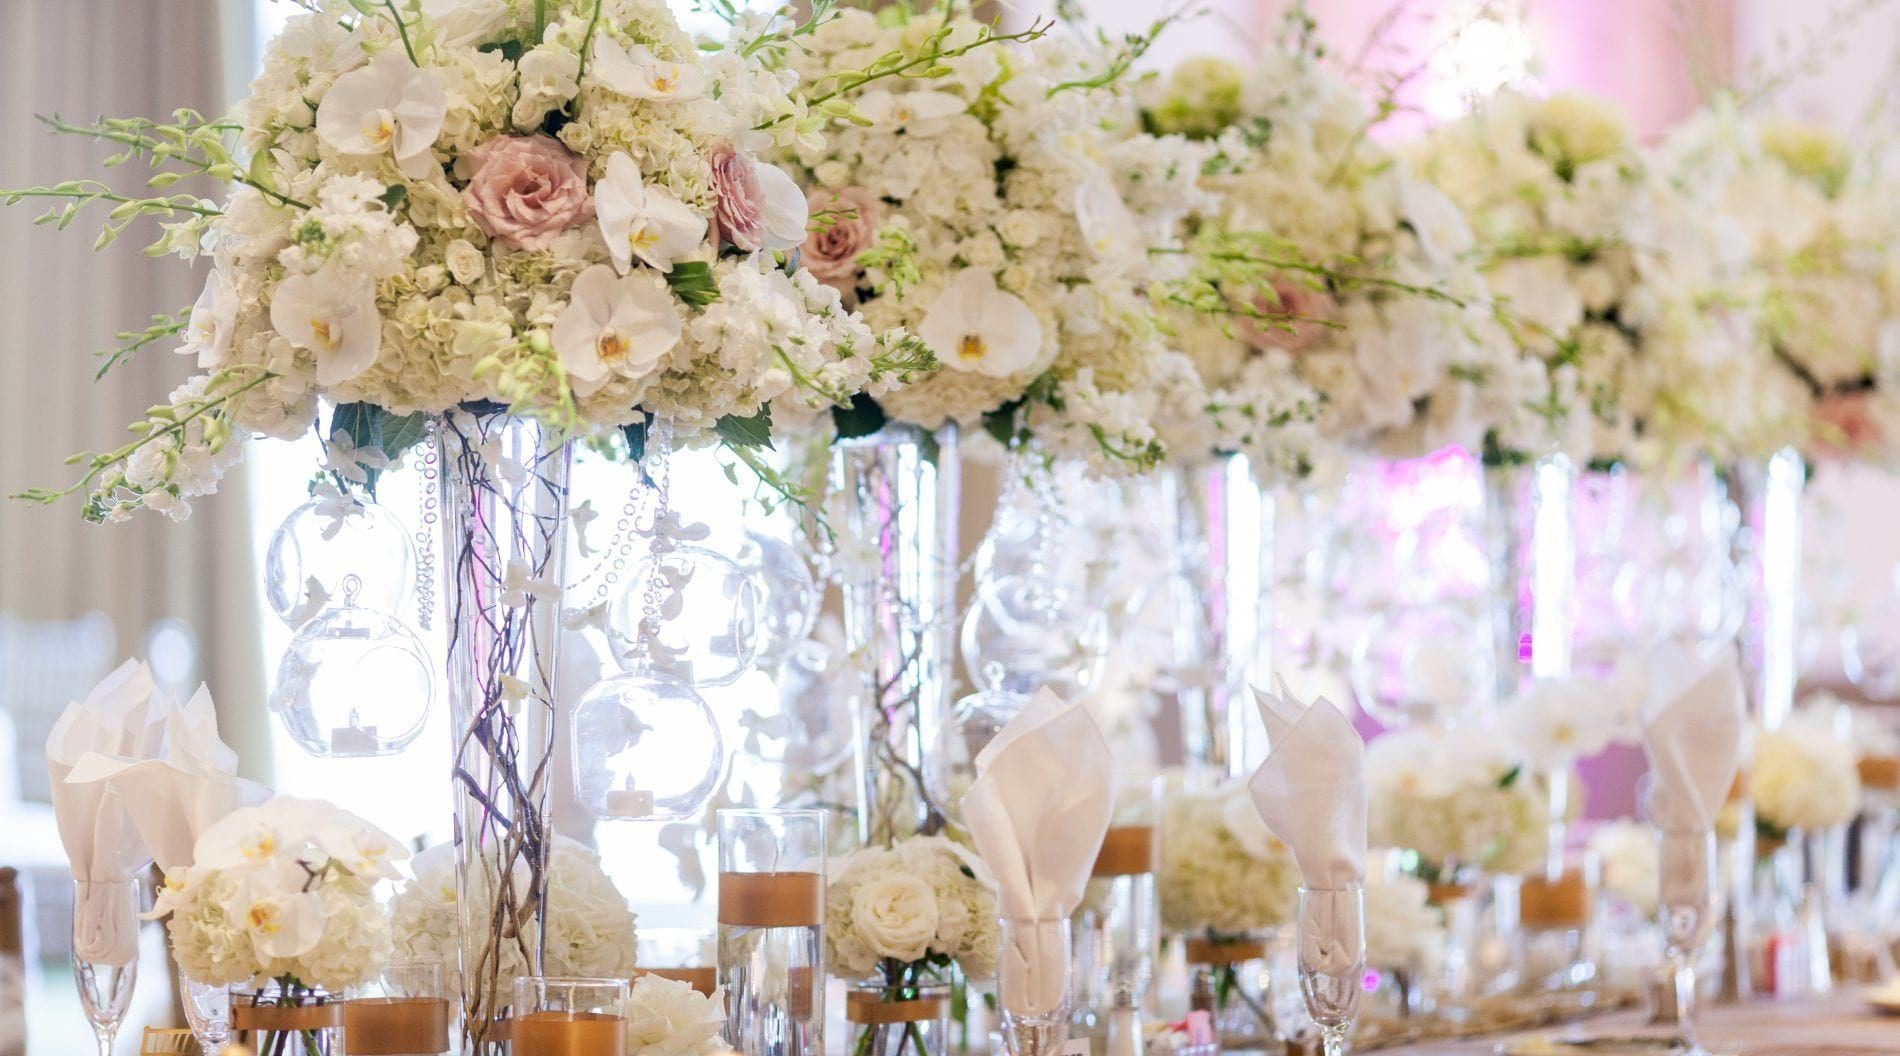 Wedding Florist Images Wedding Dress Decoration And